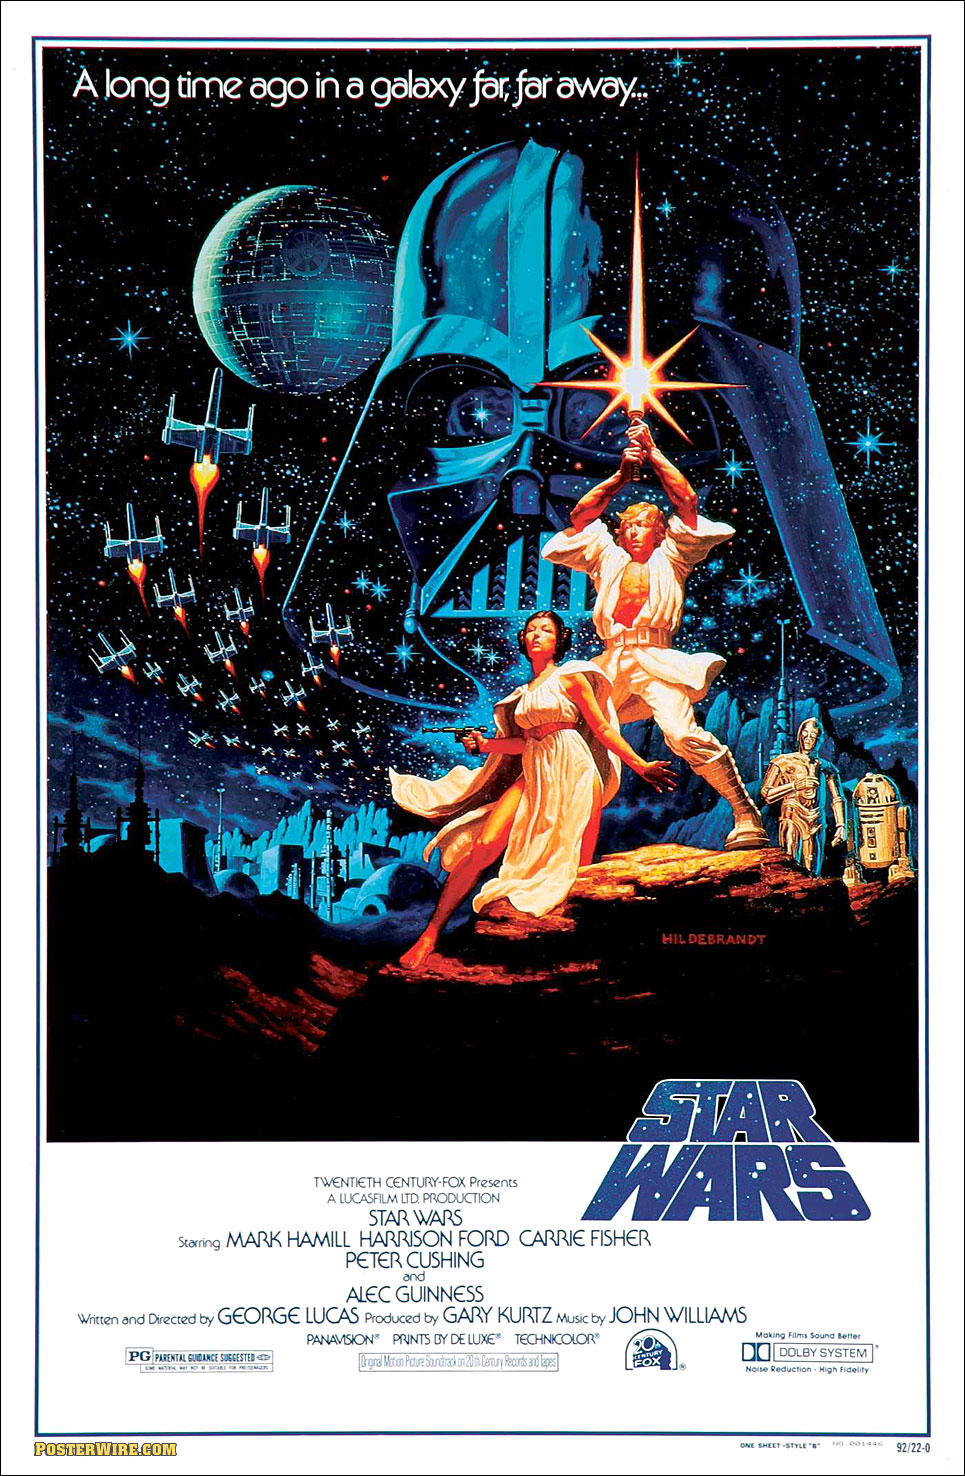 Drawn poster star wars Hand Oldie Posters Edwin vs